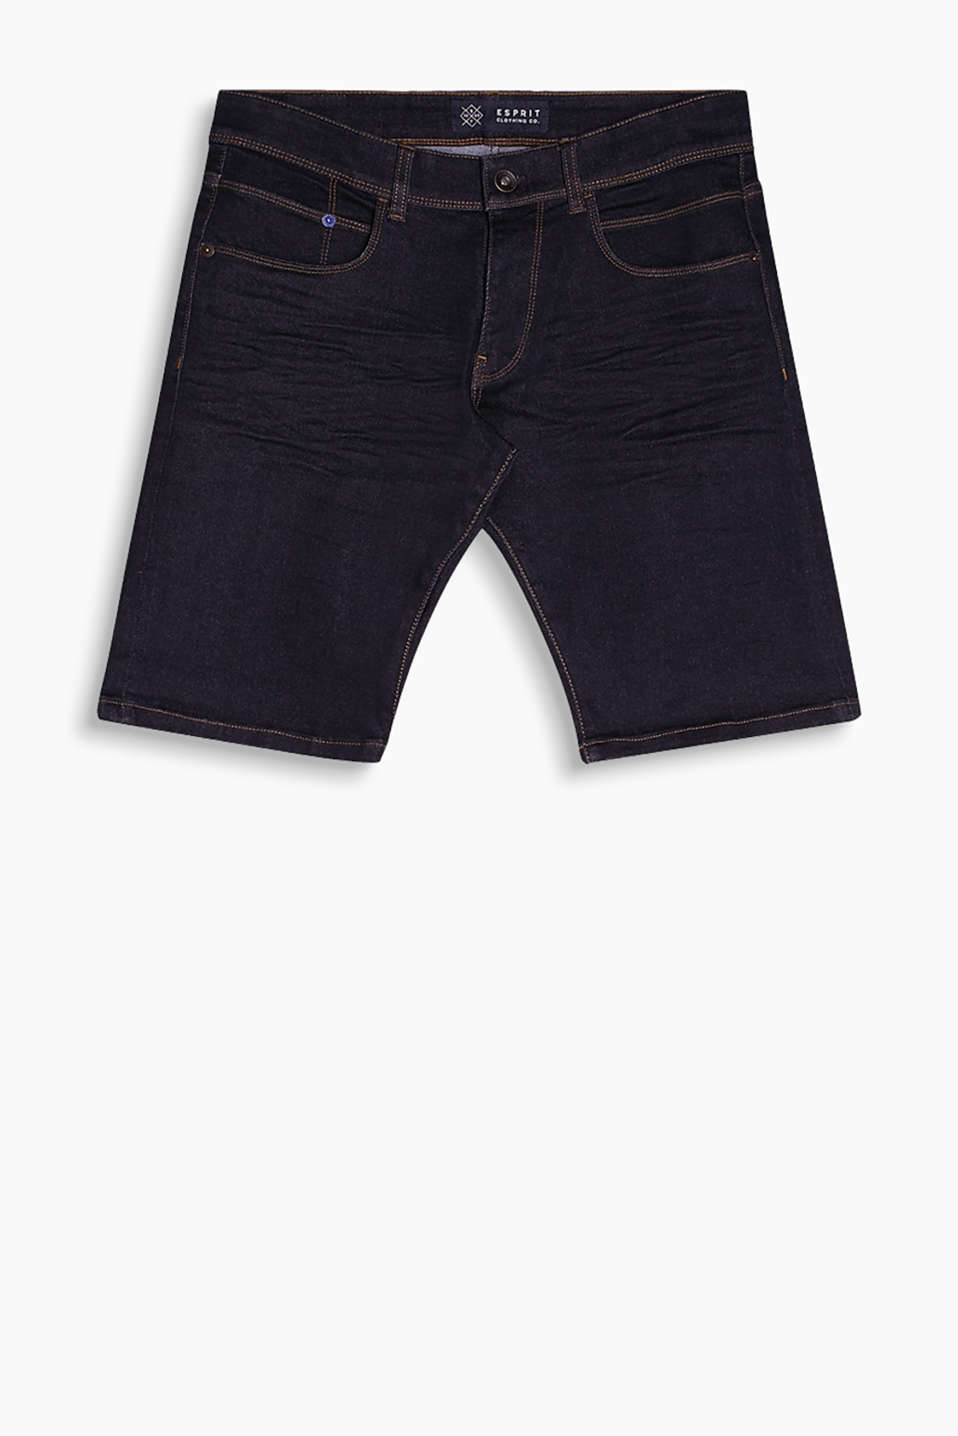 Five-pocket denim shorts in blended cotton with contrasting stitching